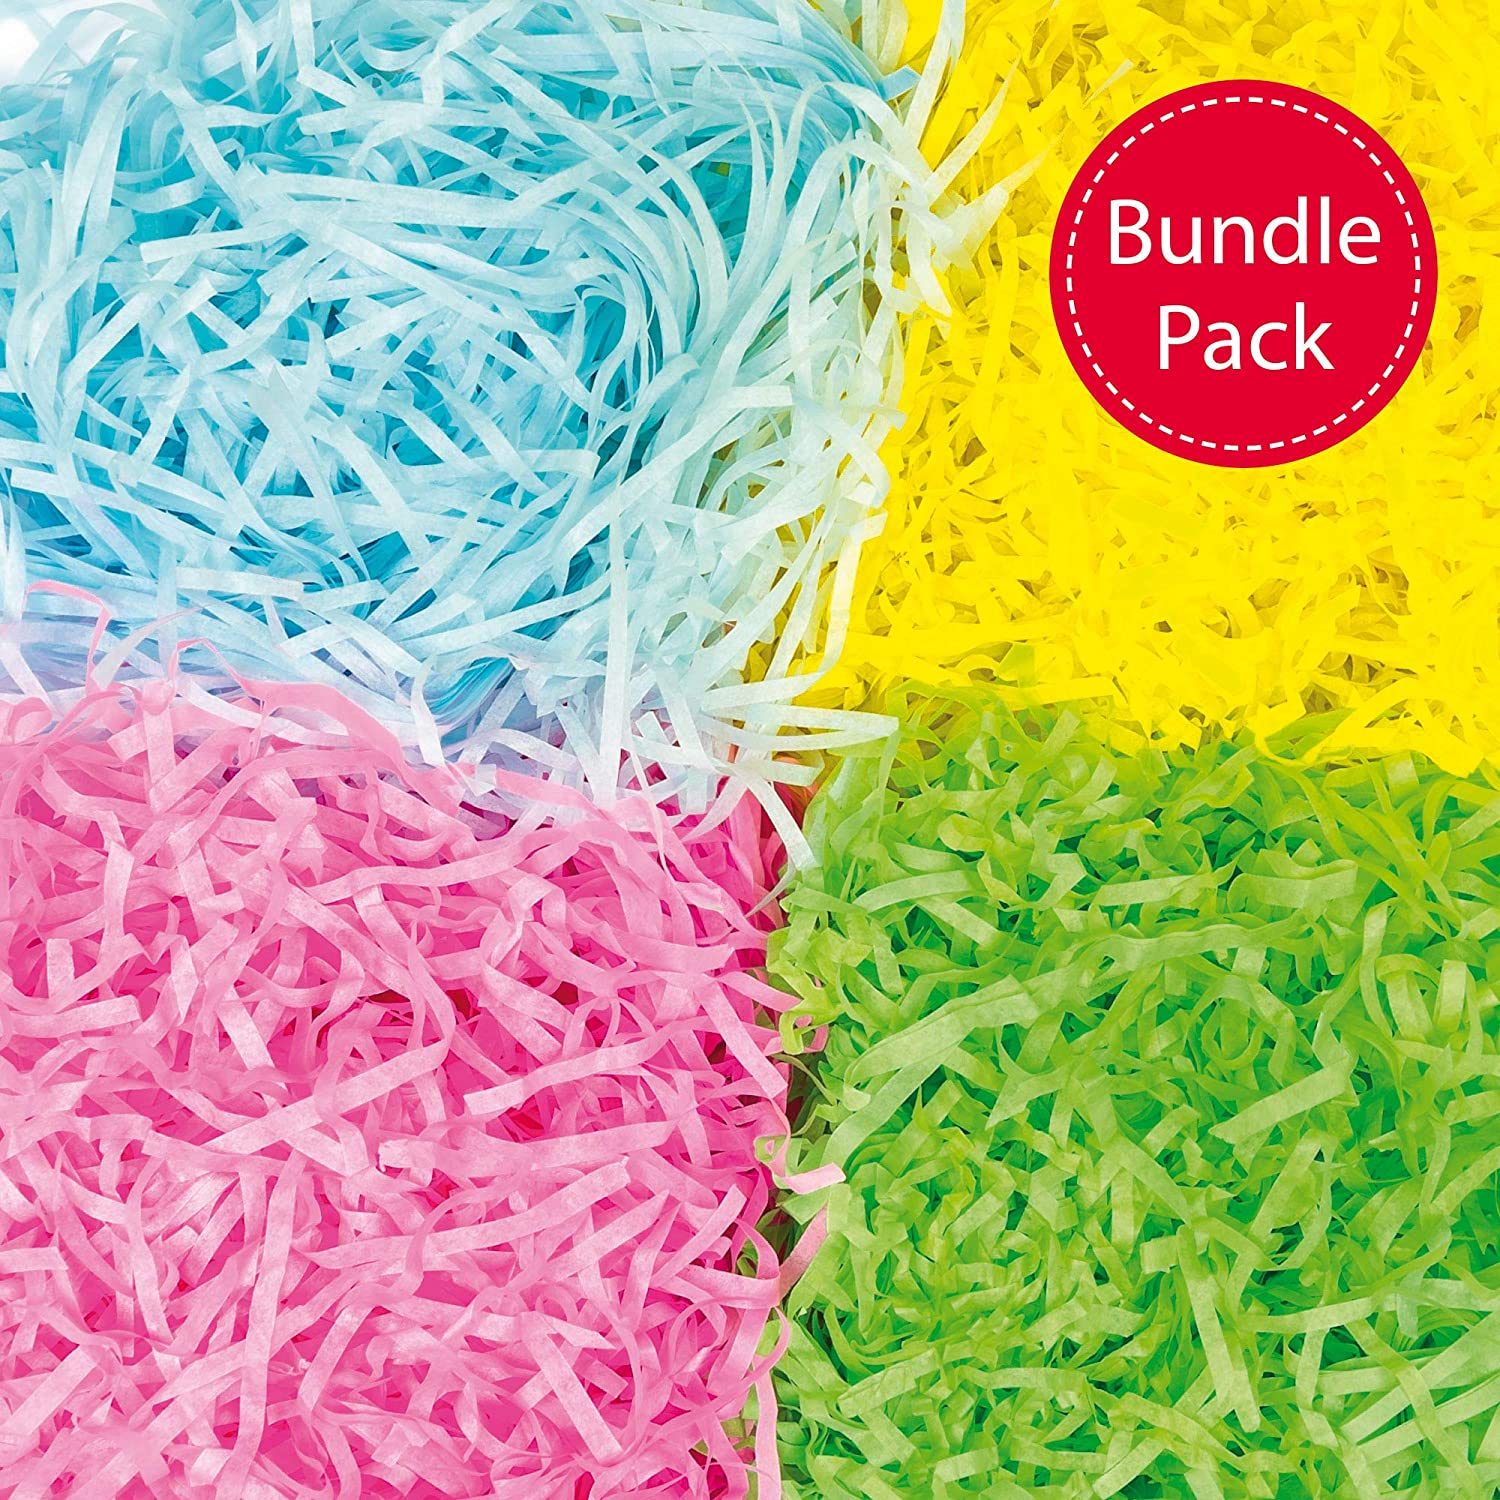 Craft Shredded Tissue in Spring Colours for Easter Arts and Crafts Per pack